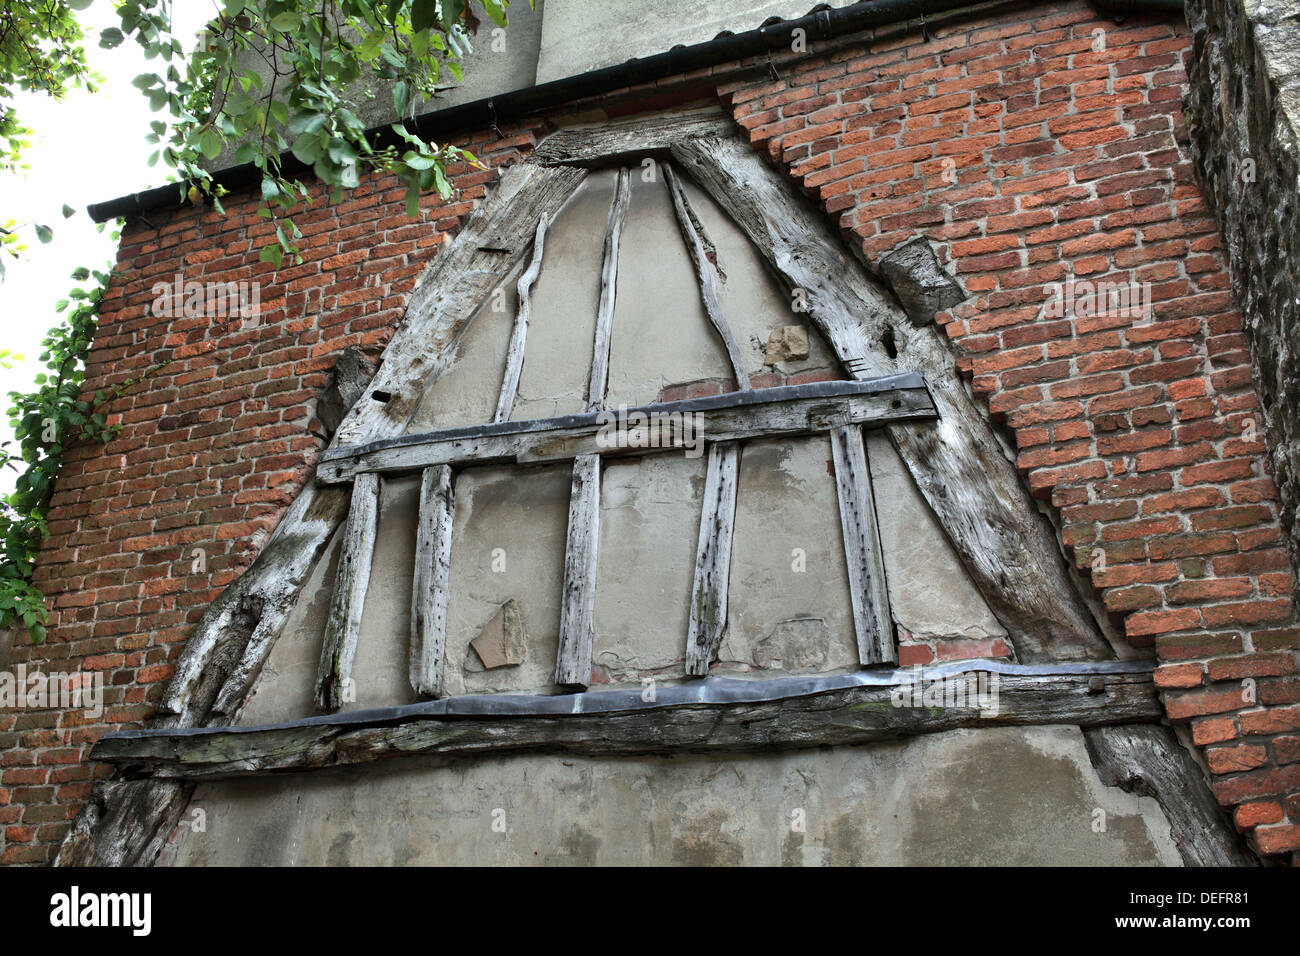 A wooden cruck remaining from the demolition of an old medieval building, High Street, Wirksworth, Derbyshire. - Stock Image